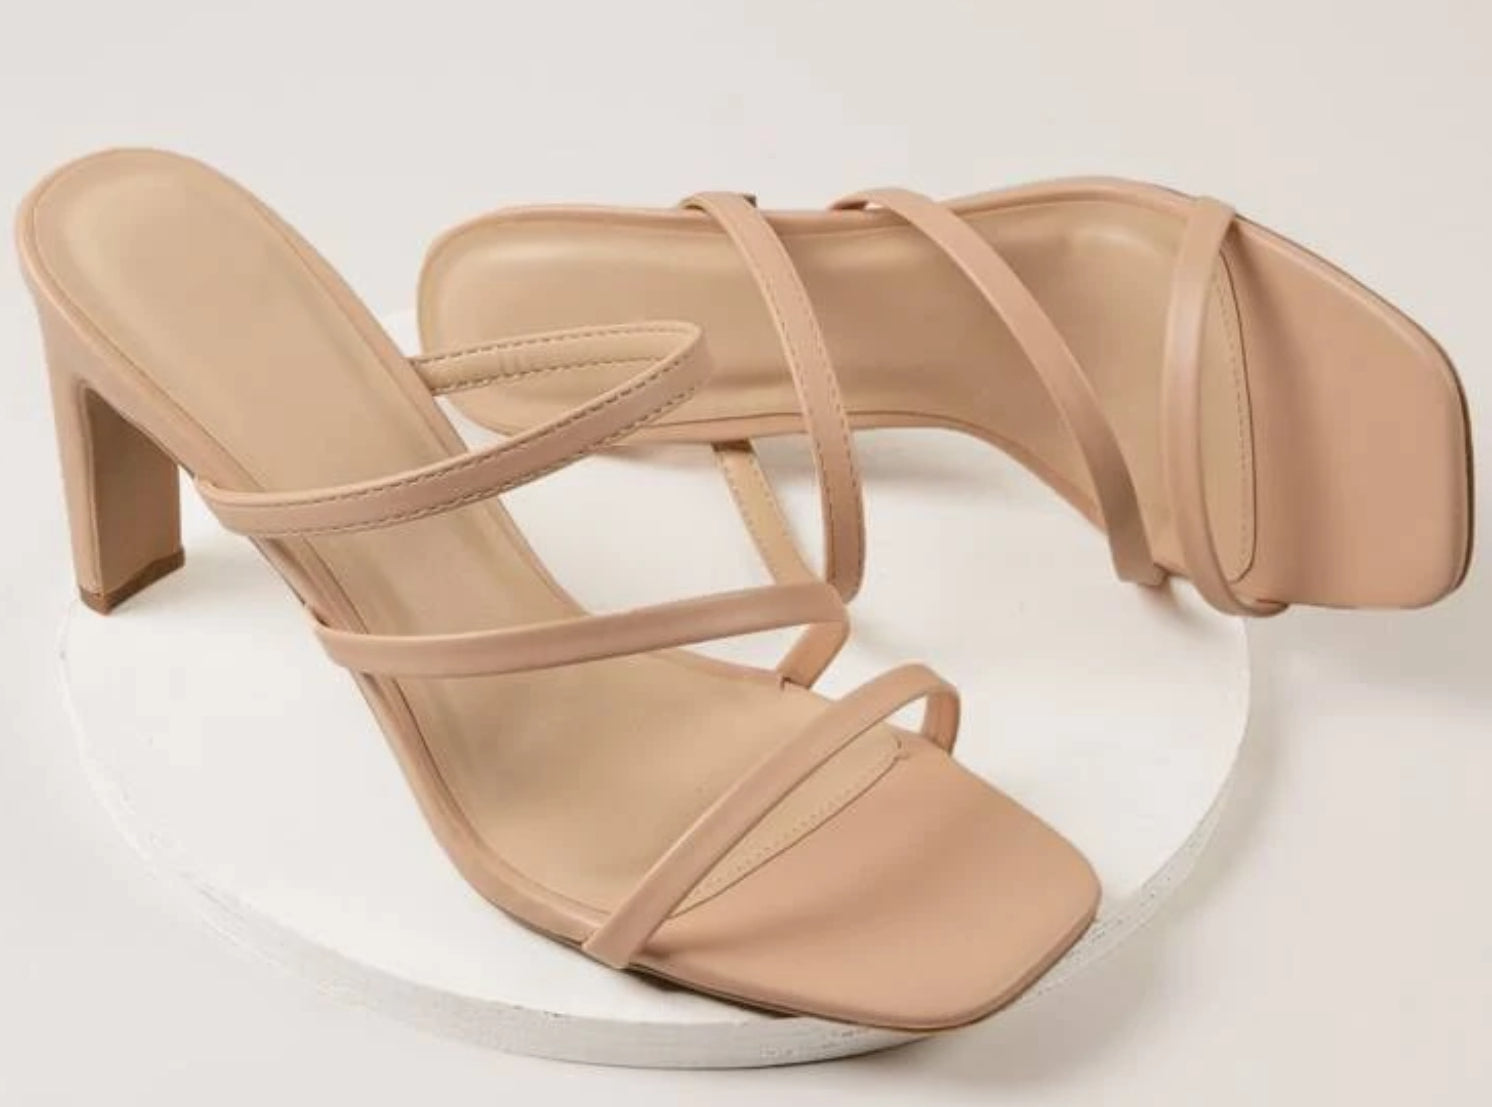 Kass - High heel - Beige